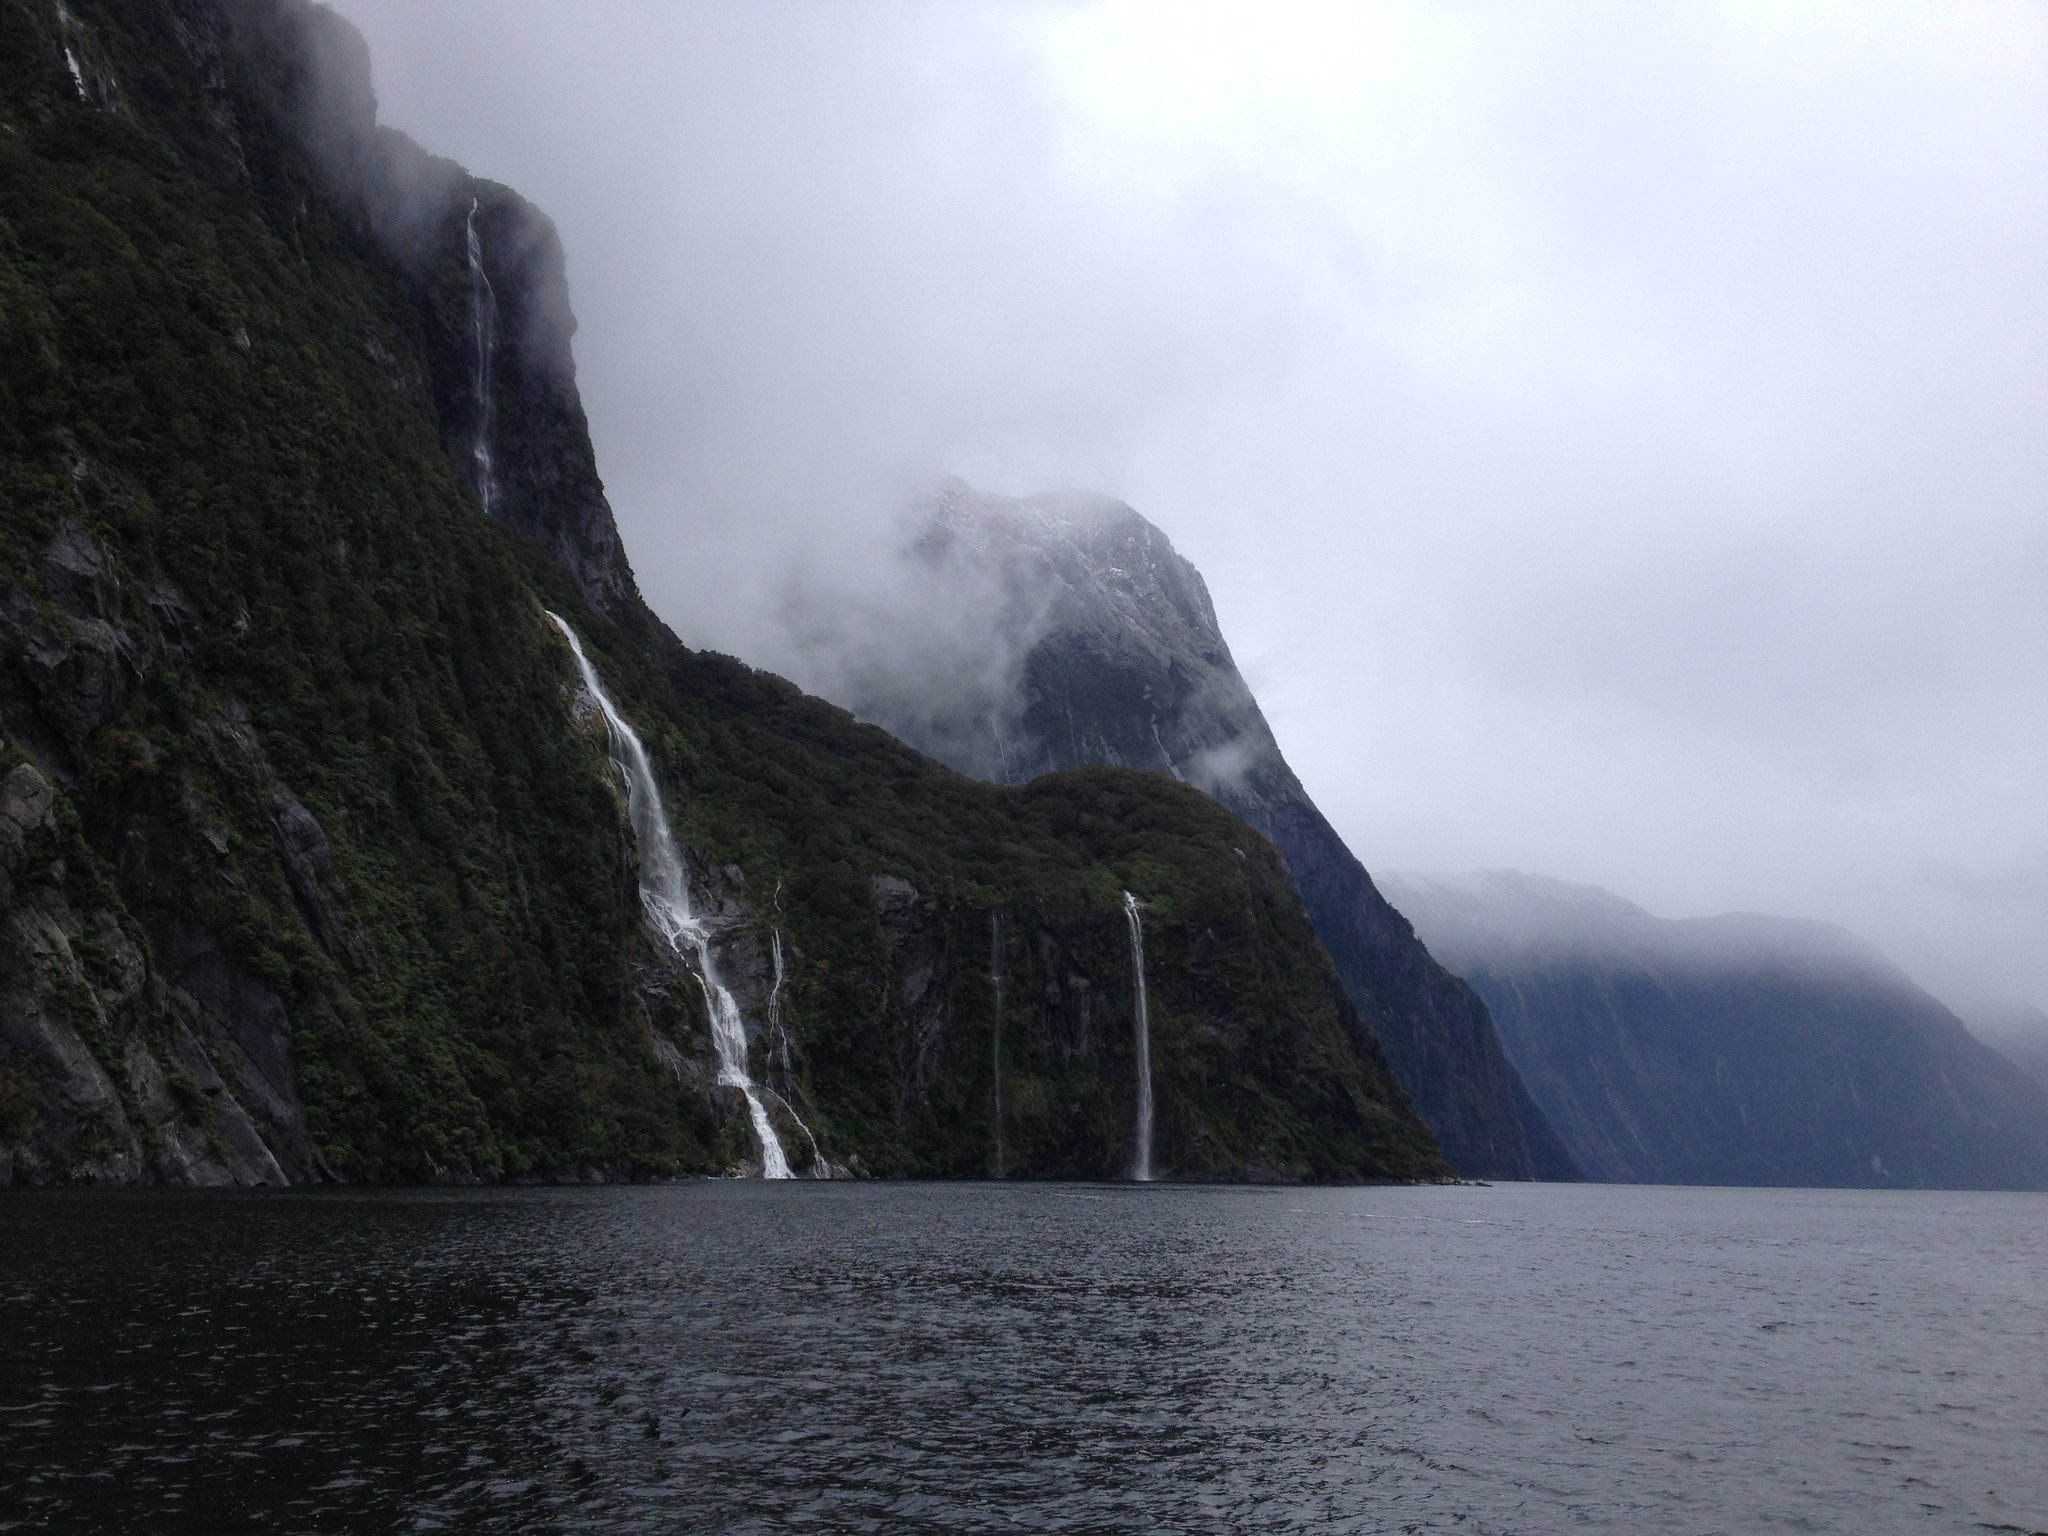 Milford Sound, waterfalls